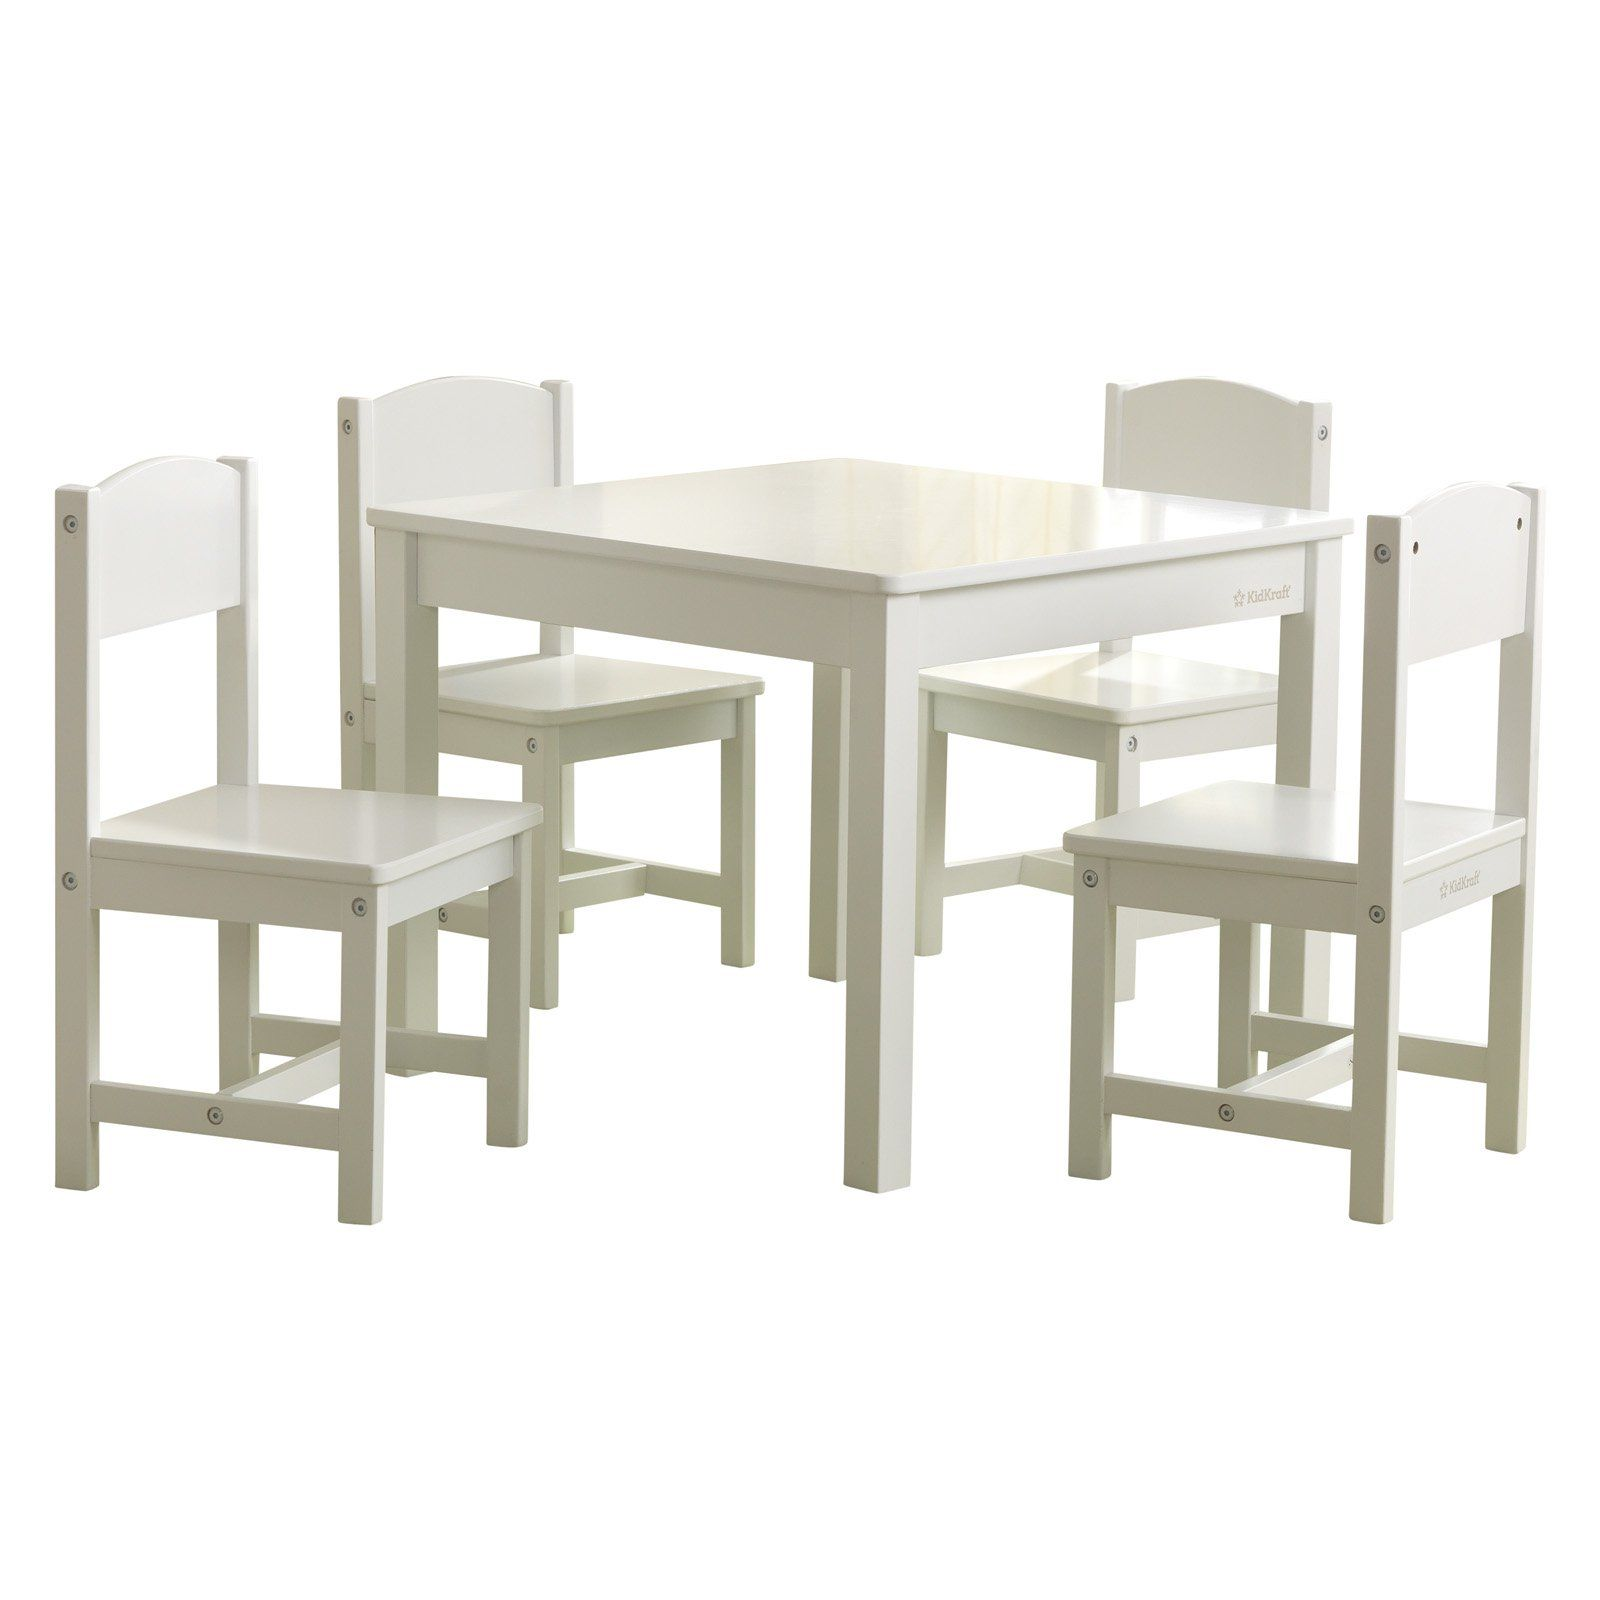 Kidkraft Farmhouse Table And 4 Chair Set Kids Table And Chairs